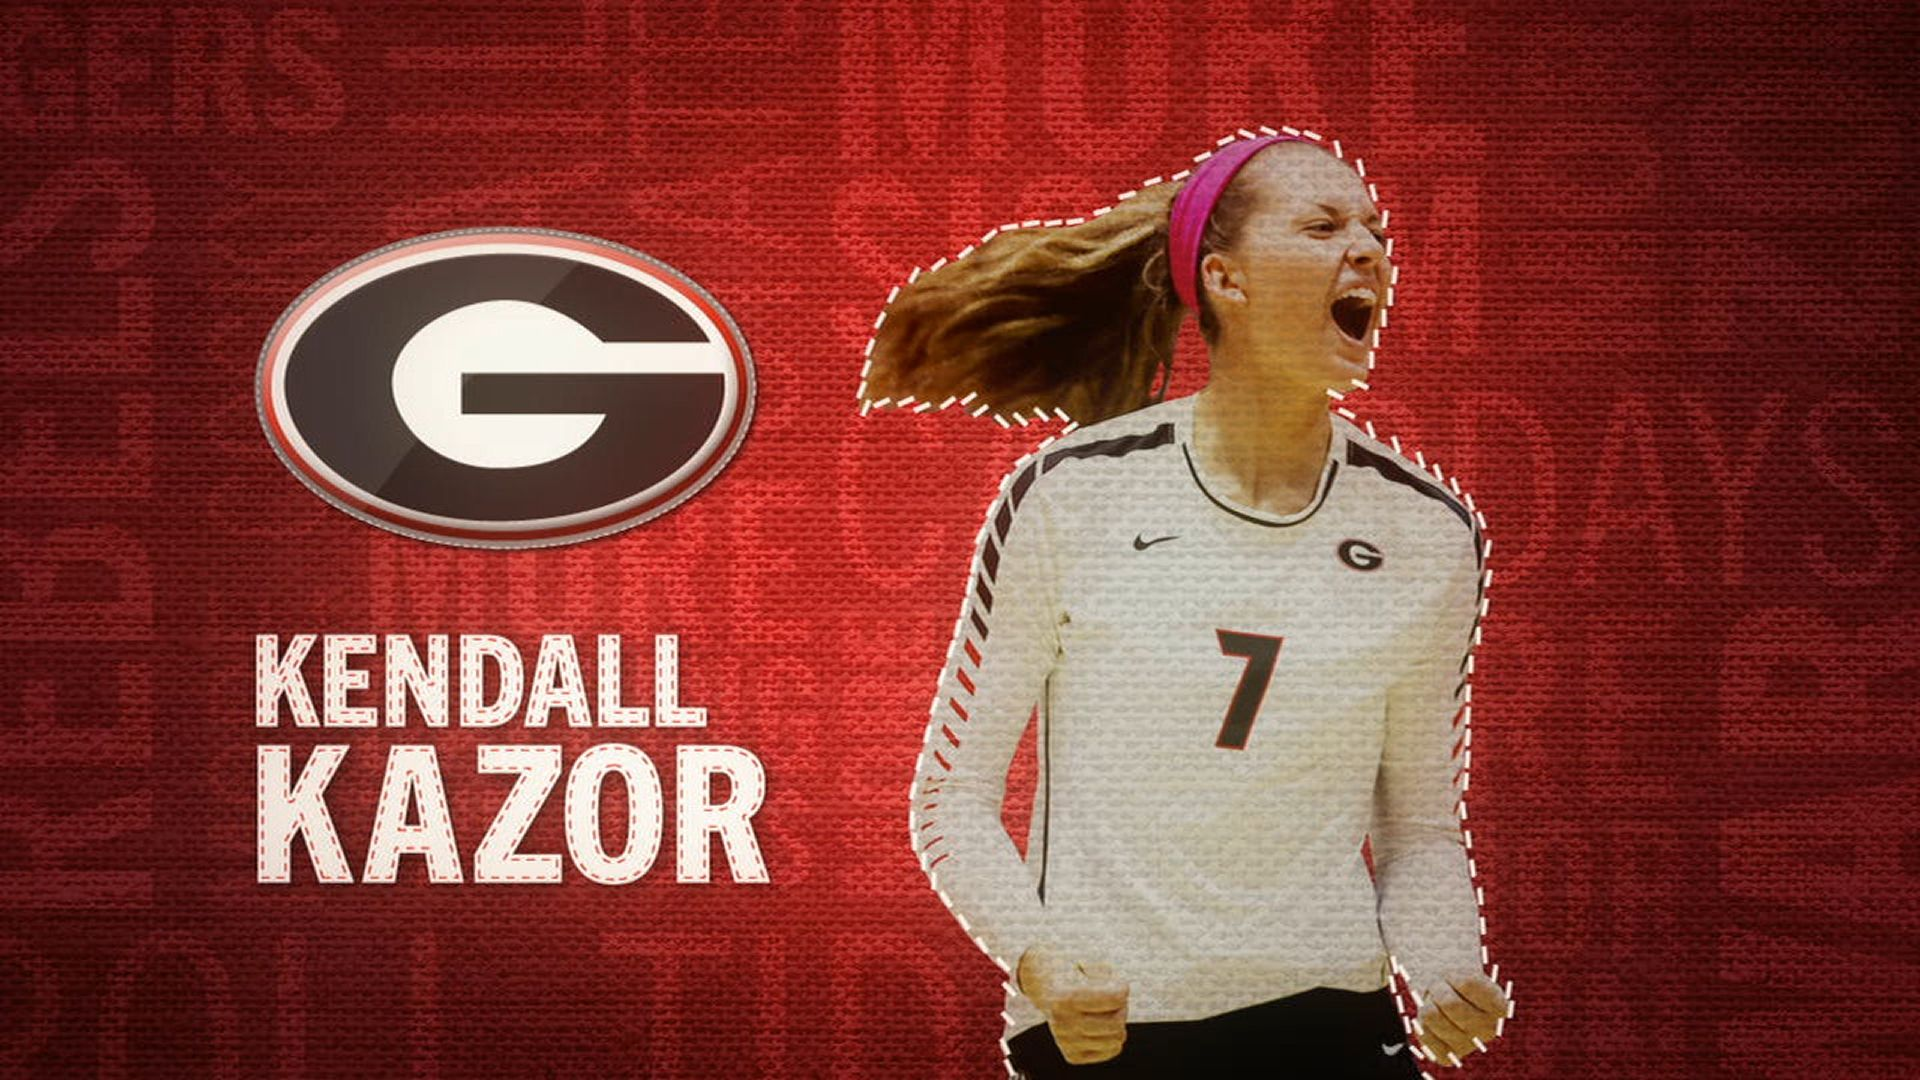 I am the SEC: Georgia's Kendall Kazor